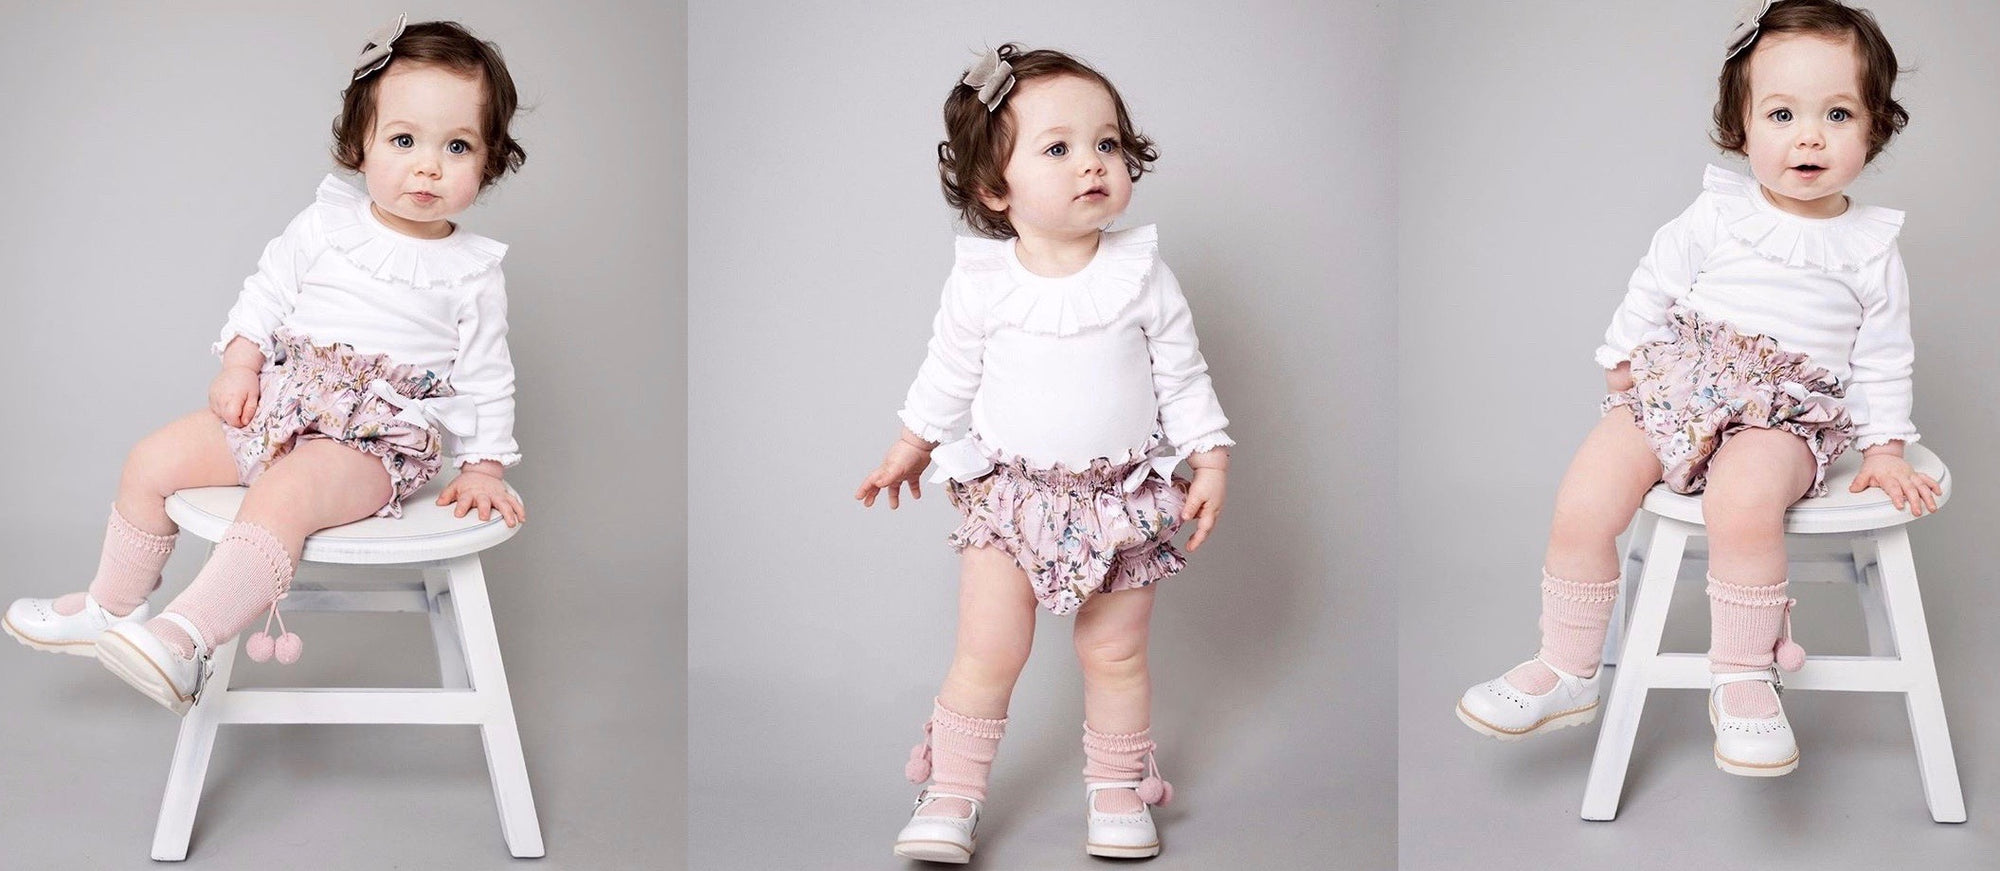 3 images of a toddler girl wearing white pleated collar top and pink flower bloomers